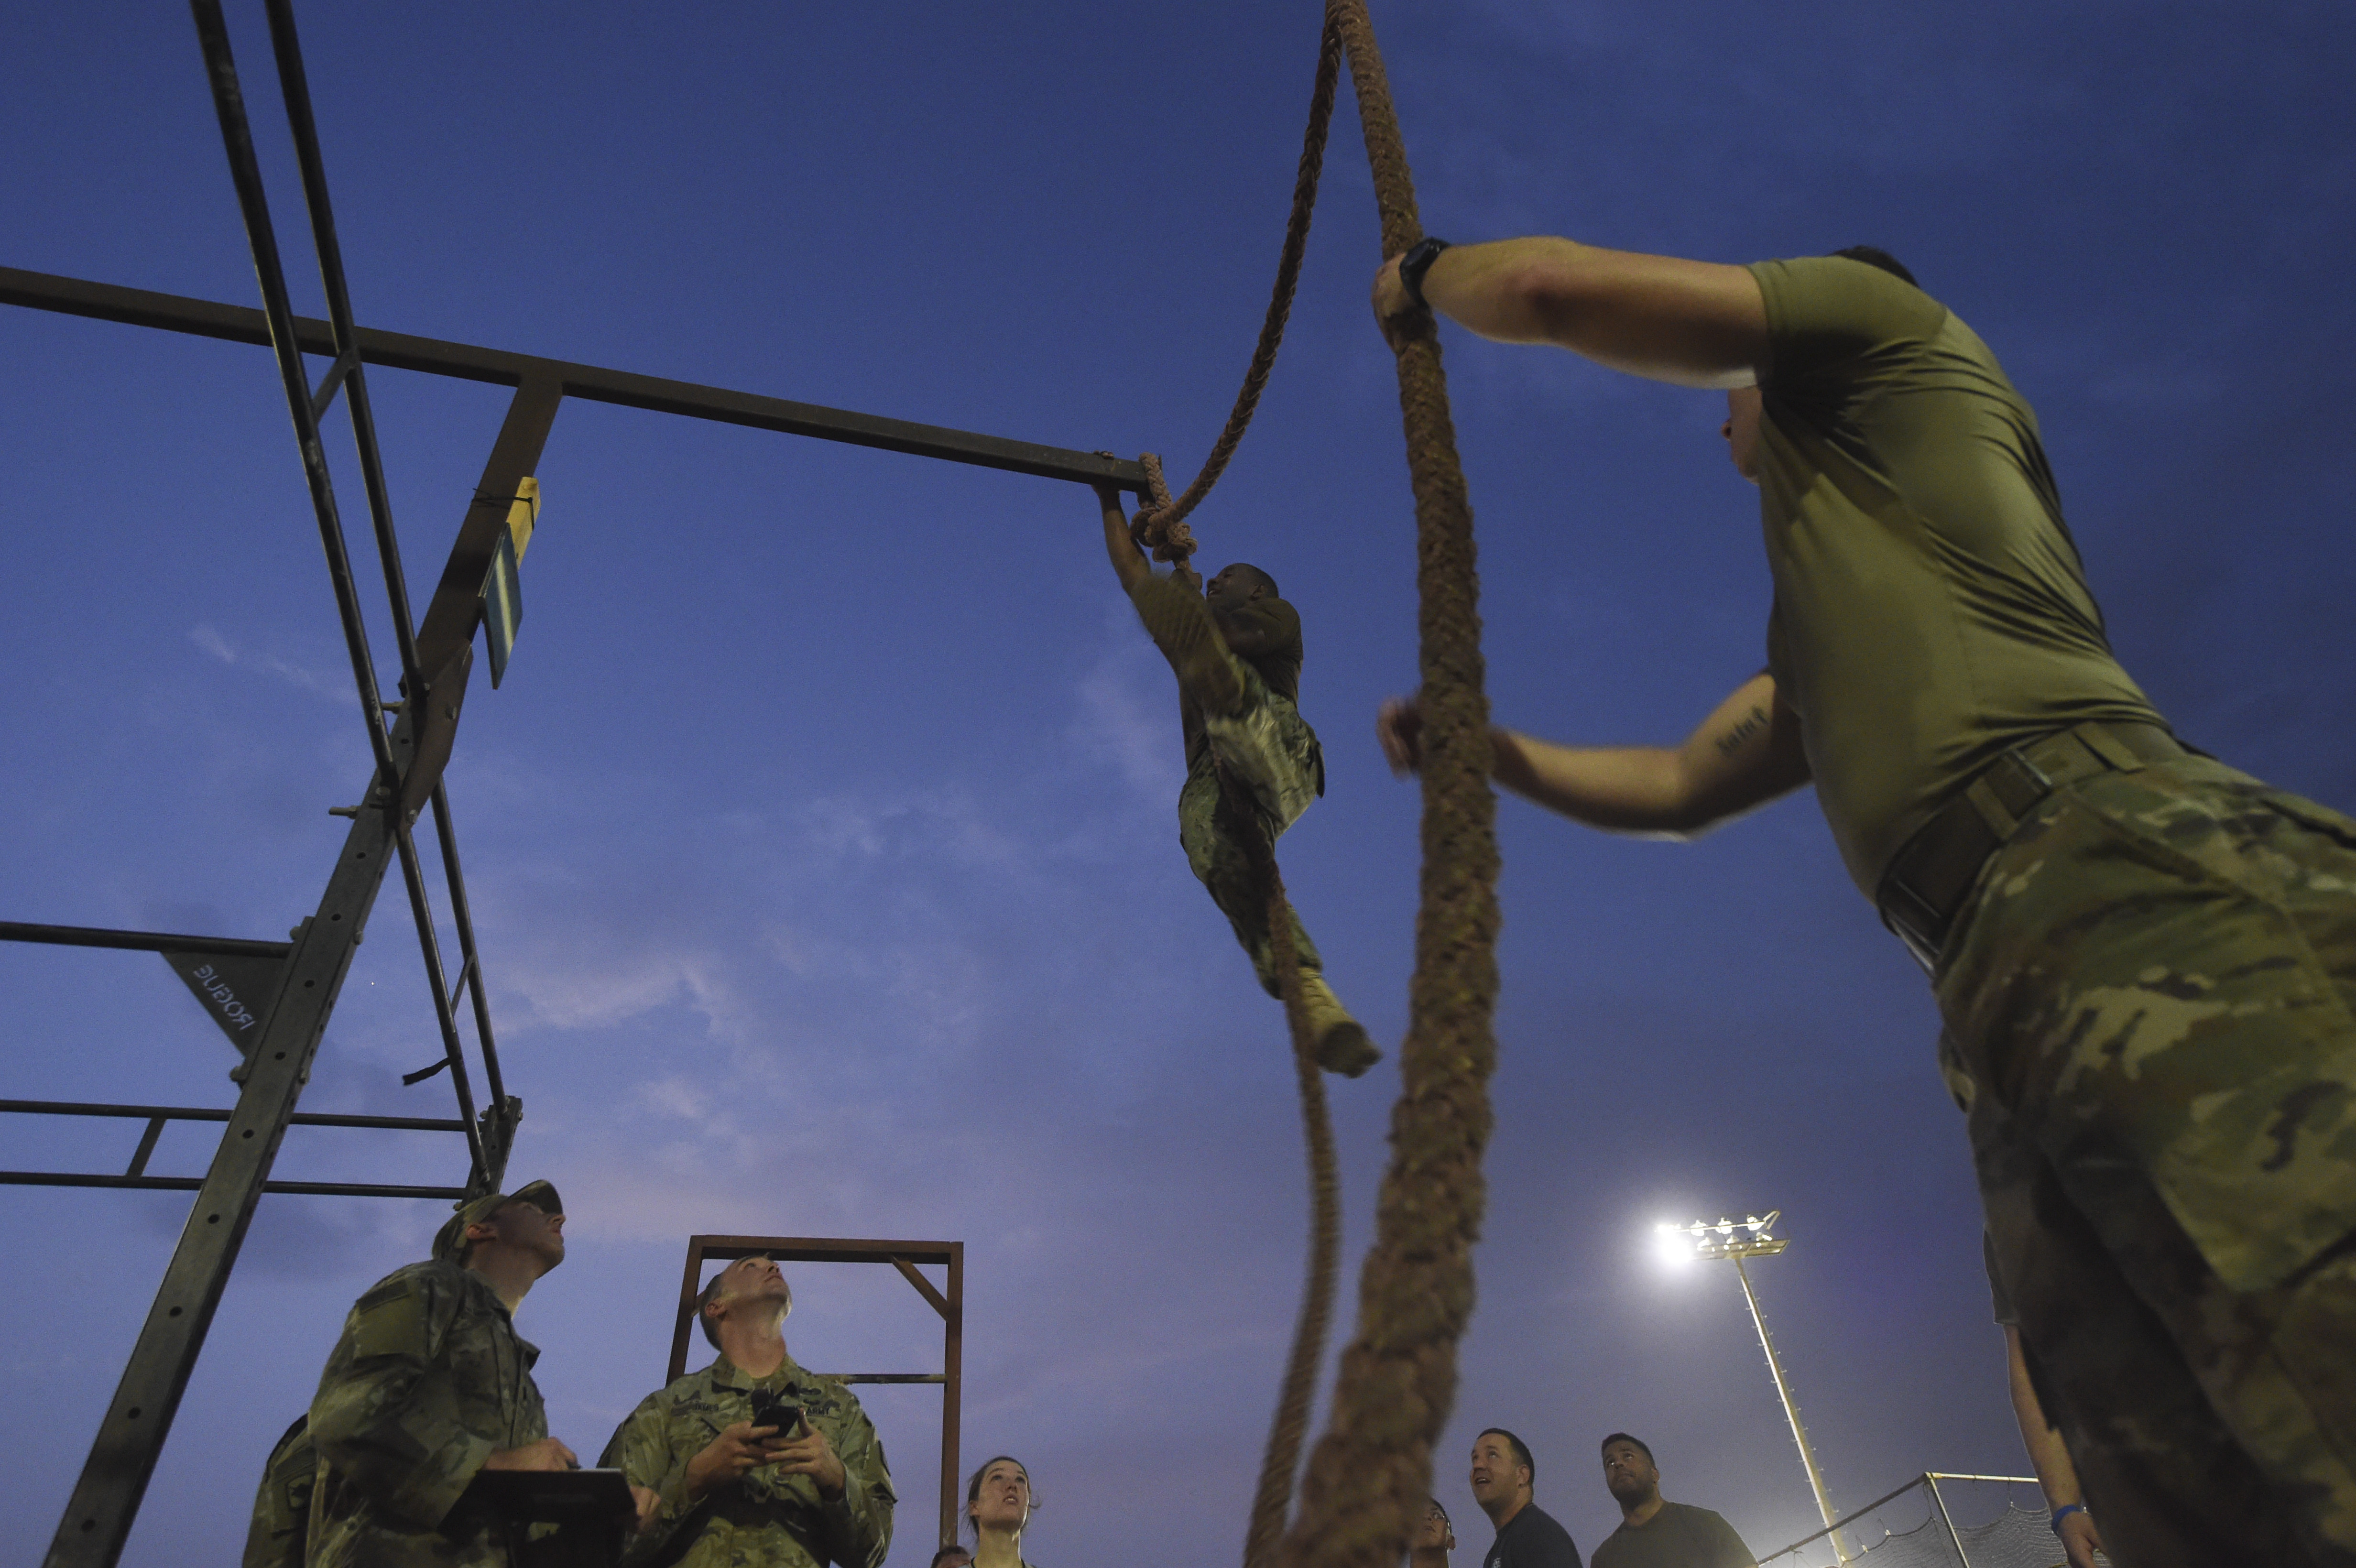 A U.S. service member completes a rope climb during a physical training test at Camp Lemonnier, Djibouti, Aug. 5, 2017. The test was in preparation for an upcoming multi-day French Desert Commando Course that will challenge participants physically and mentally through land and water obstacles, combat scenarios and extreme endurance exercises while surviving in austere field conditions. (U.S. Air Force photo by Staff Sgt. Eboni Prince)